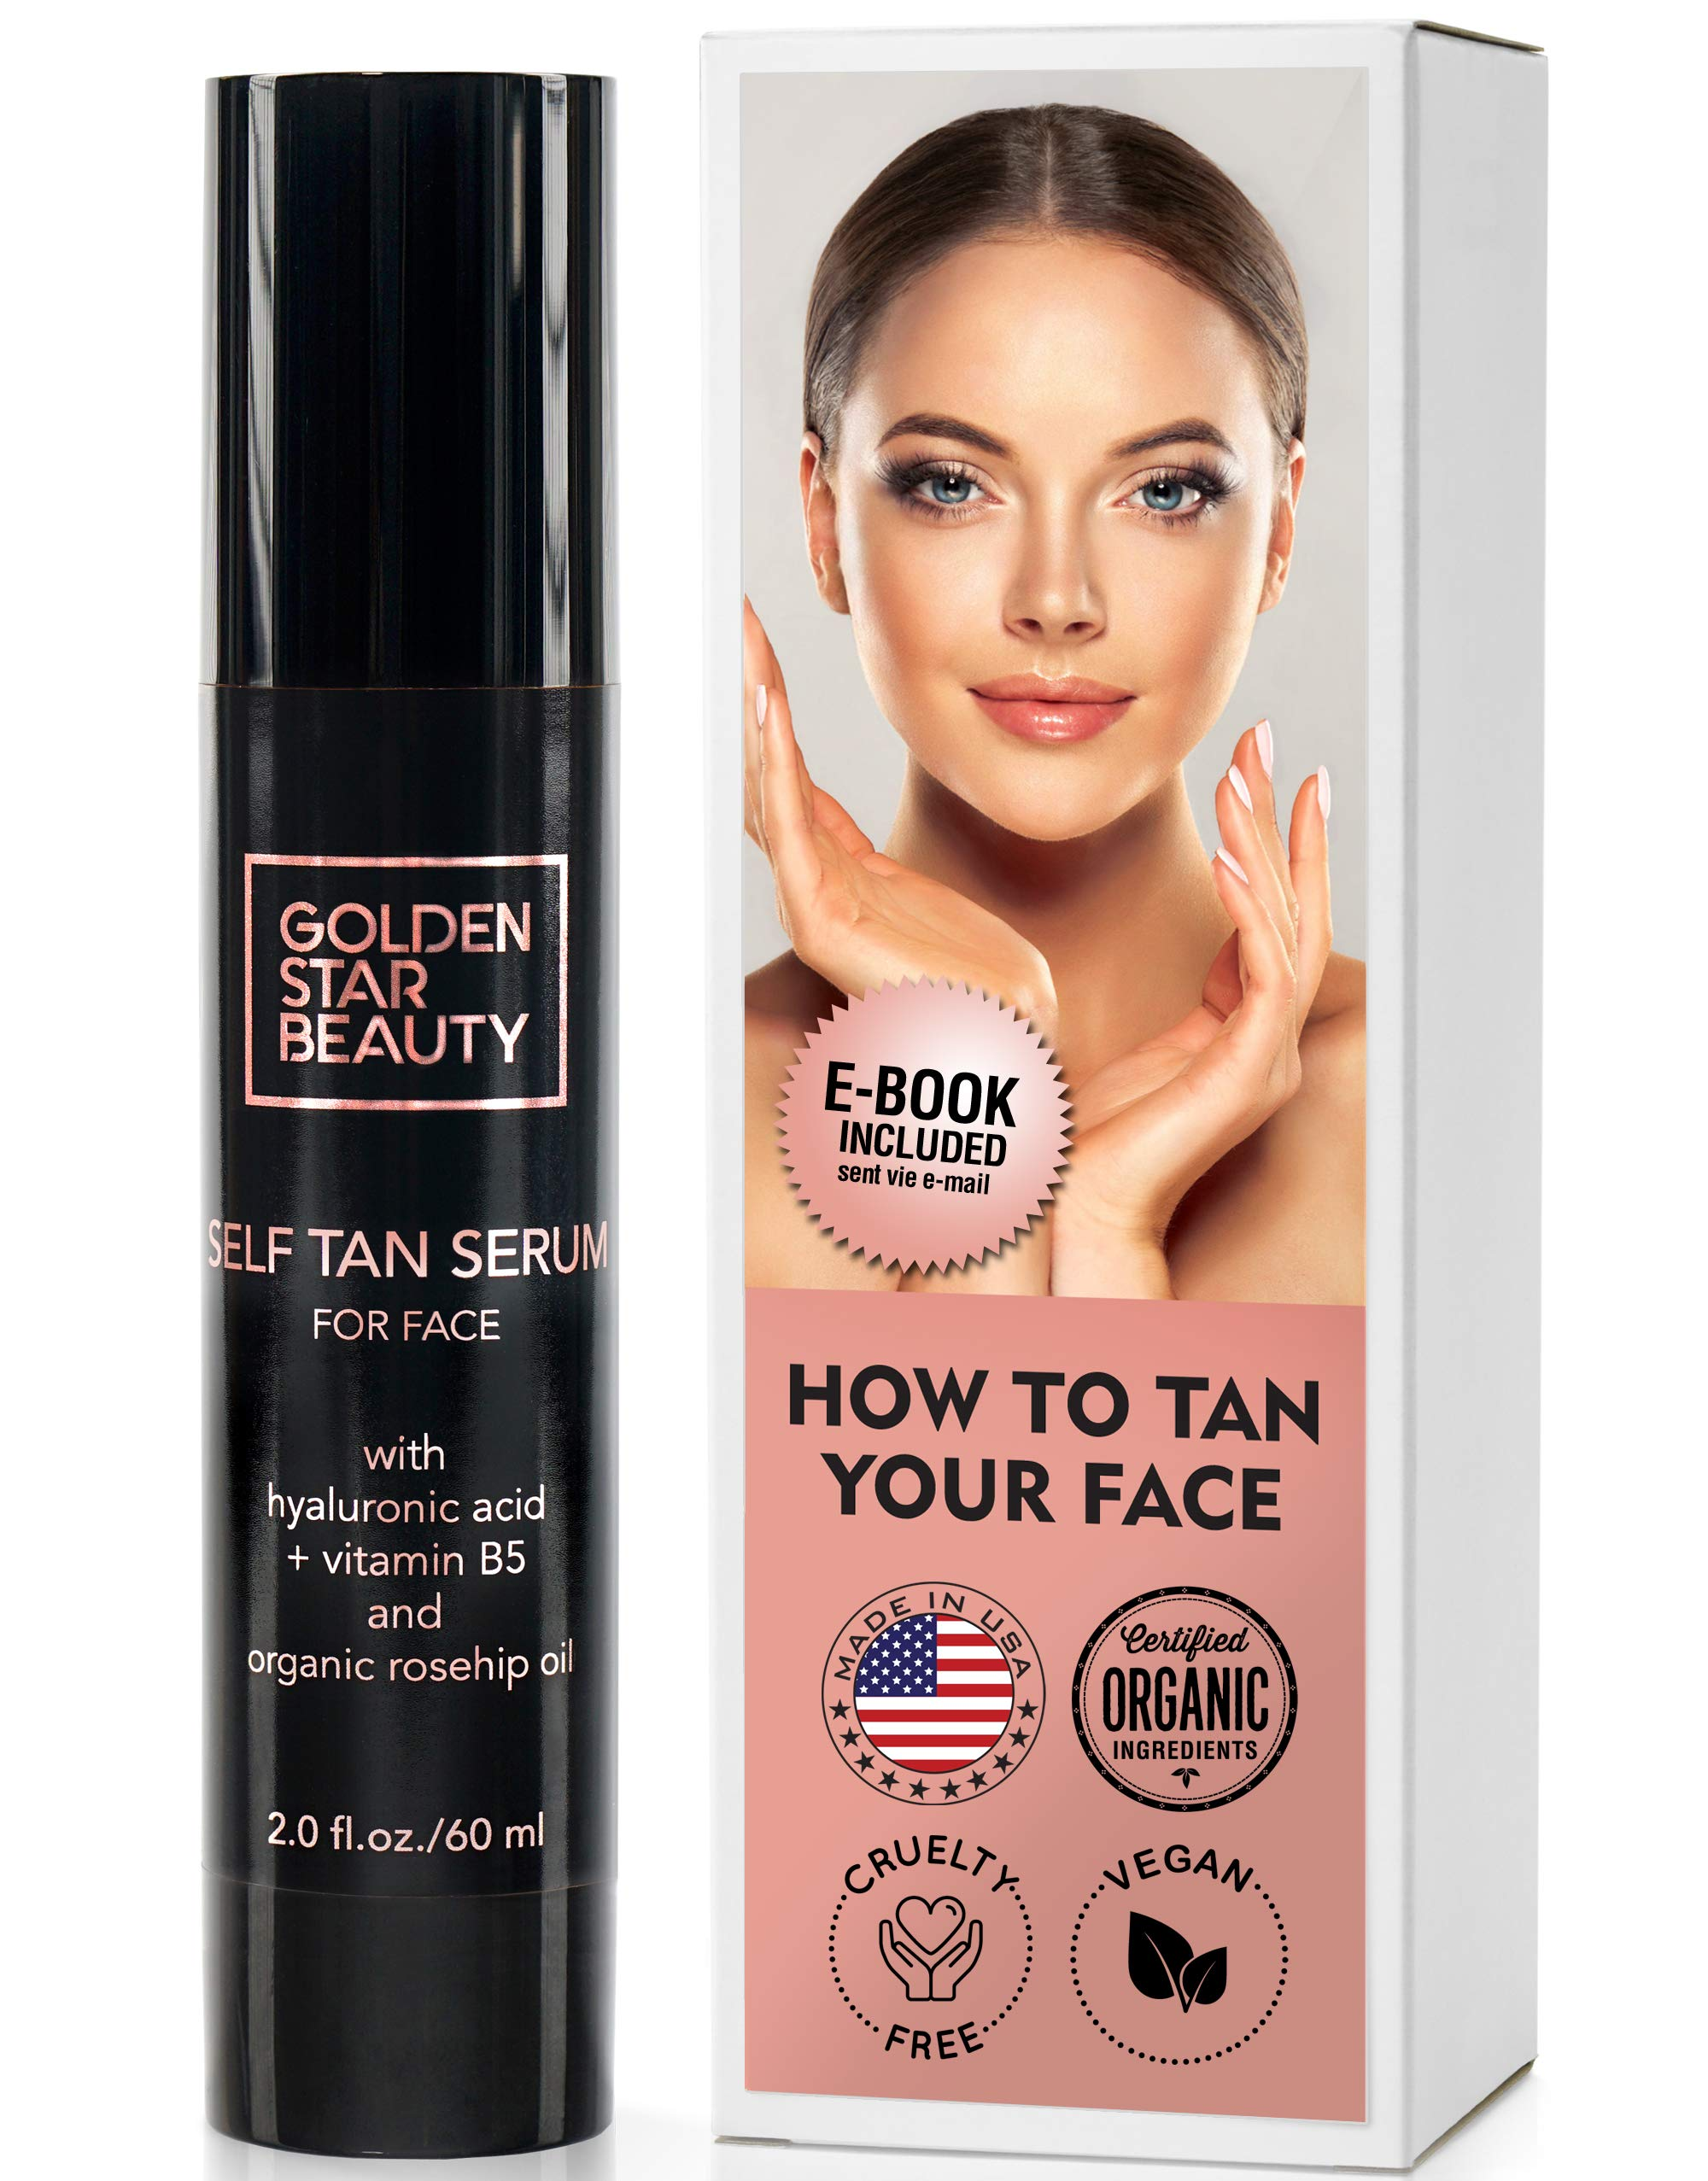 Self Tanner For Face - Anti Aging Sunless Tanning Serum w/Hyaluronic Acid Organic Oils & Vitamin B5 - Non Comedogenic Fake Tan Facial Bronzer including eBook For Sunkissed Glow - 2.0 fl